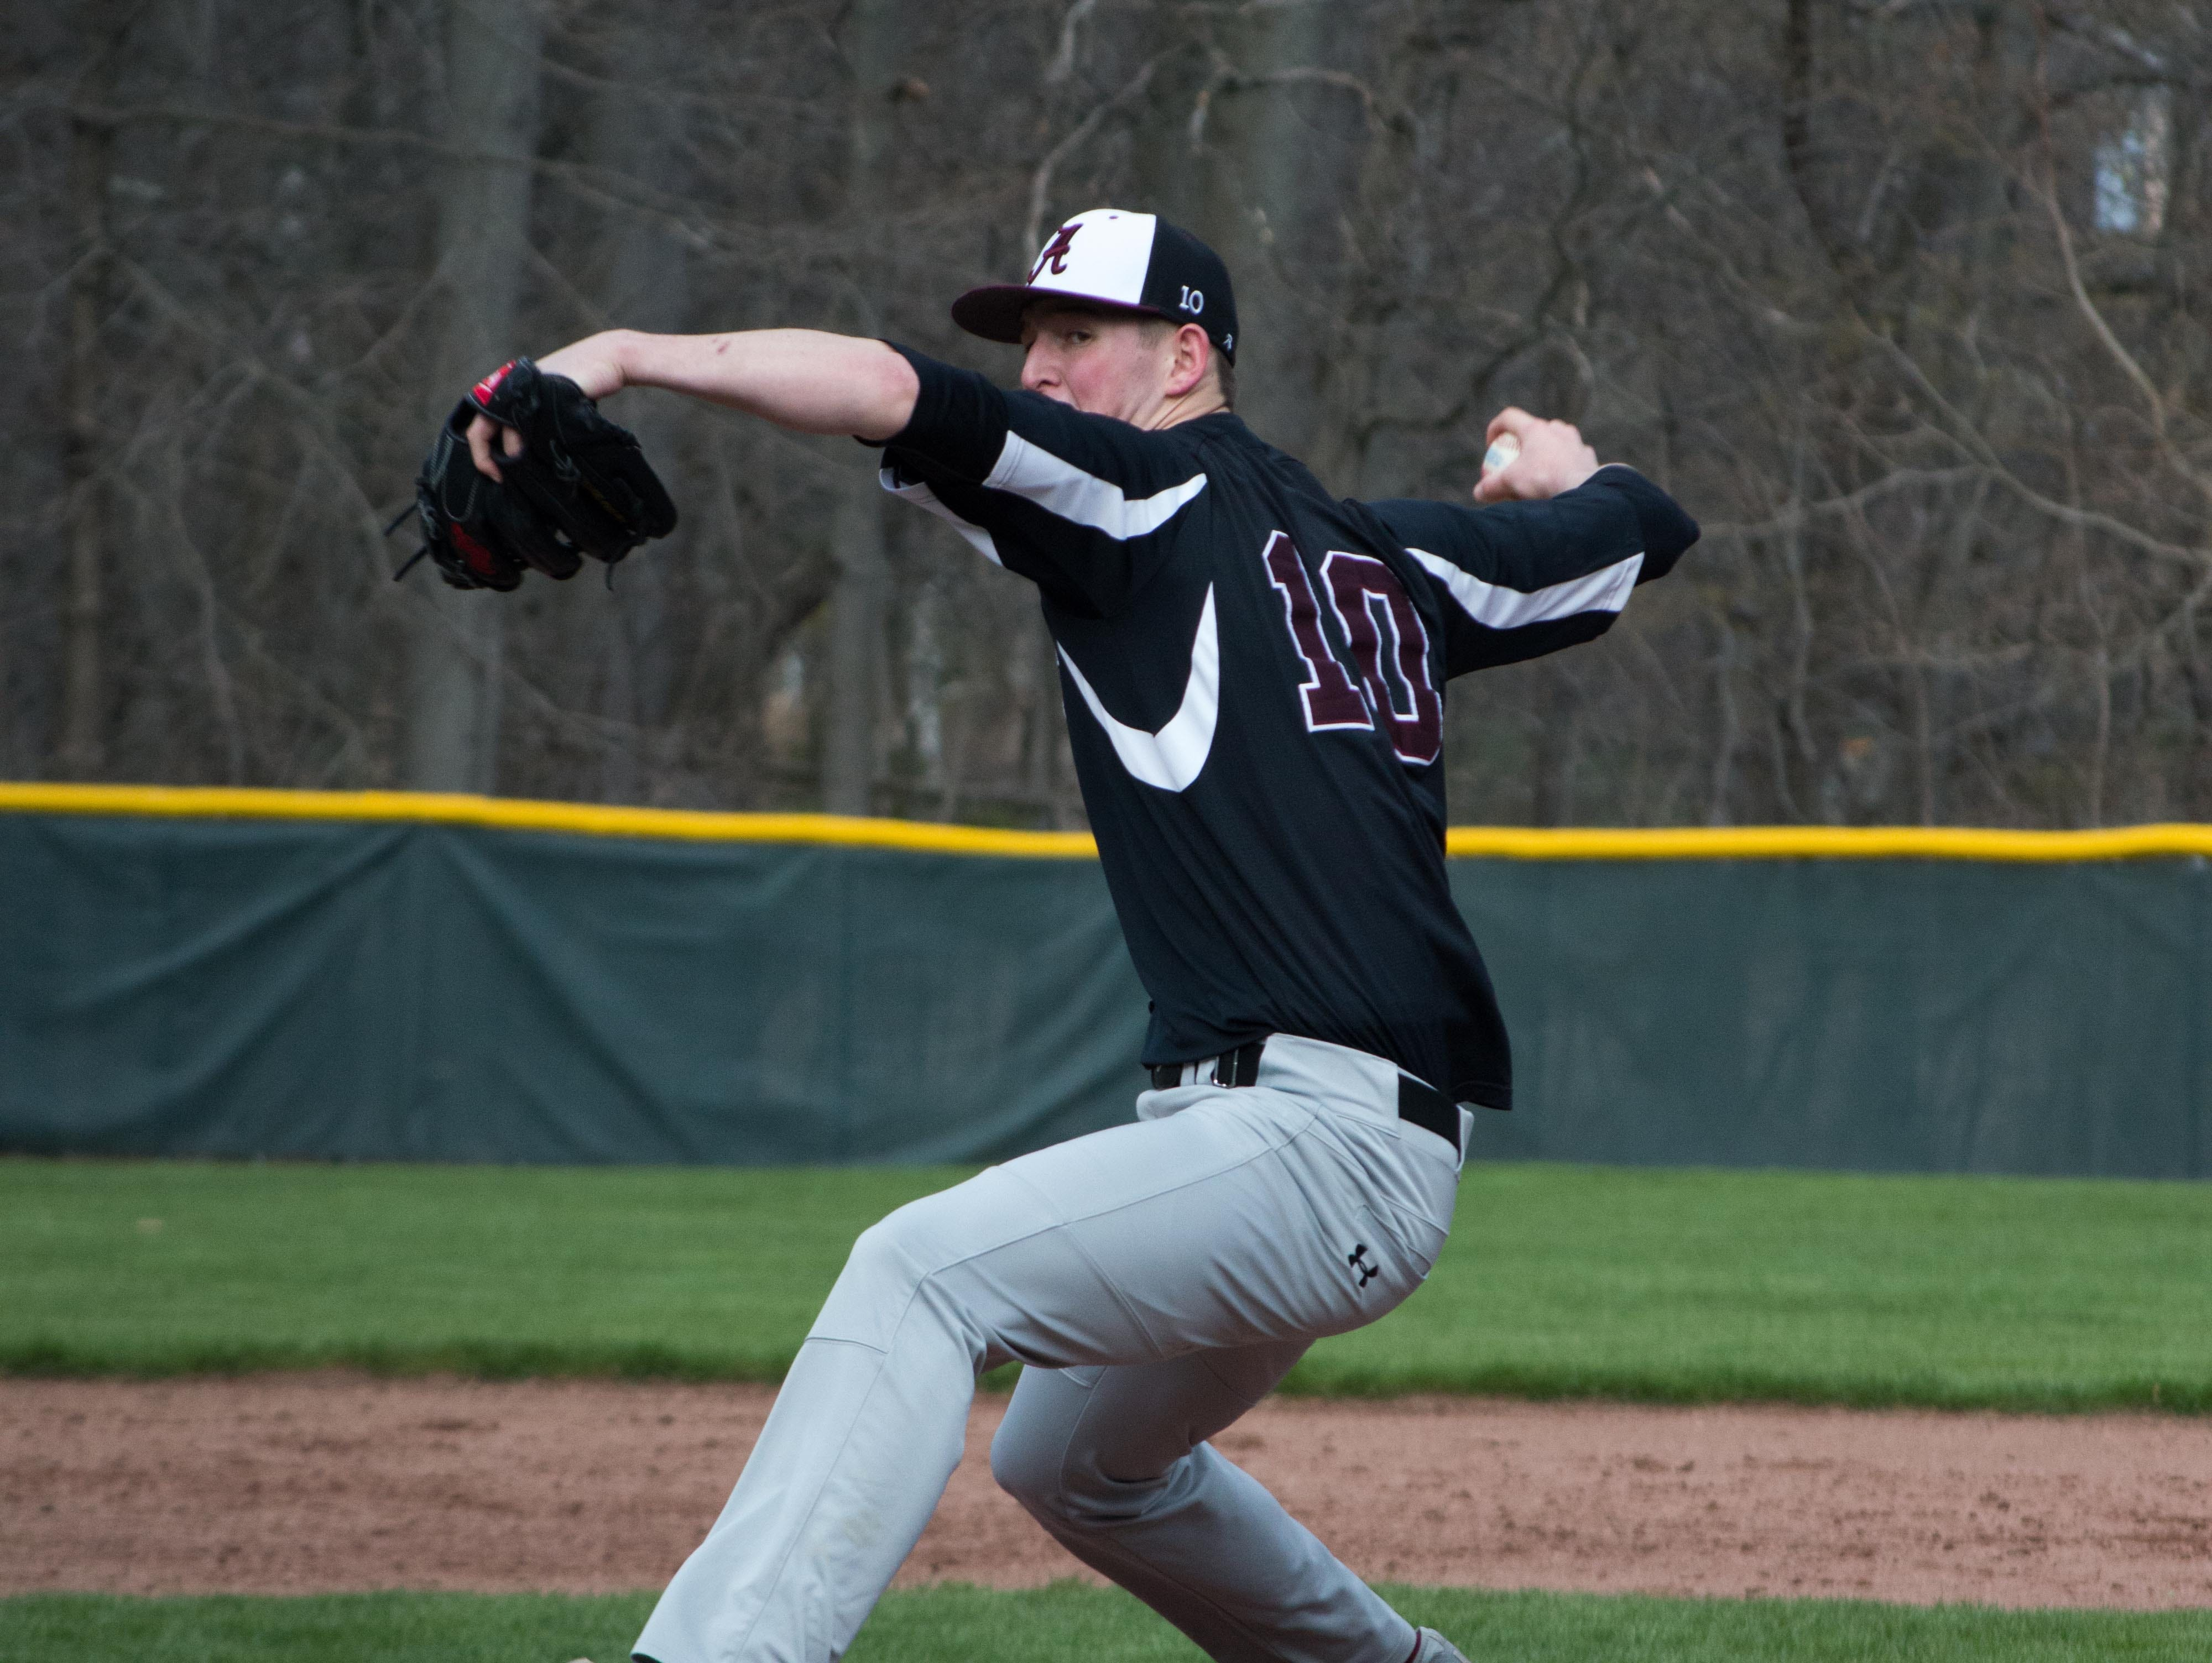 Albertus Magnus pitcher James Reilly works in the first inning of a game against Rye at Disbrow Park in Rye on April 8, 2016.